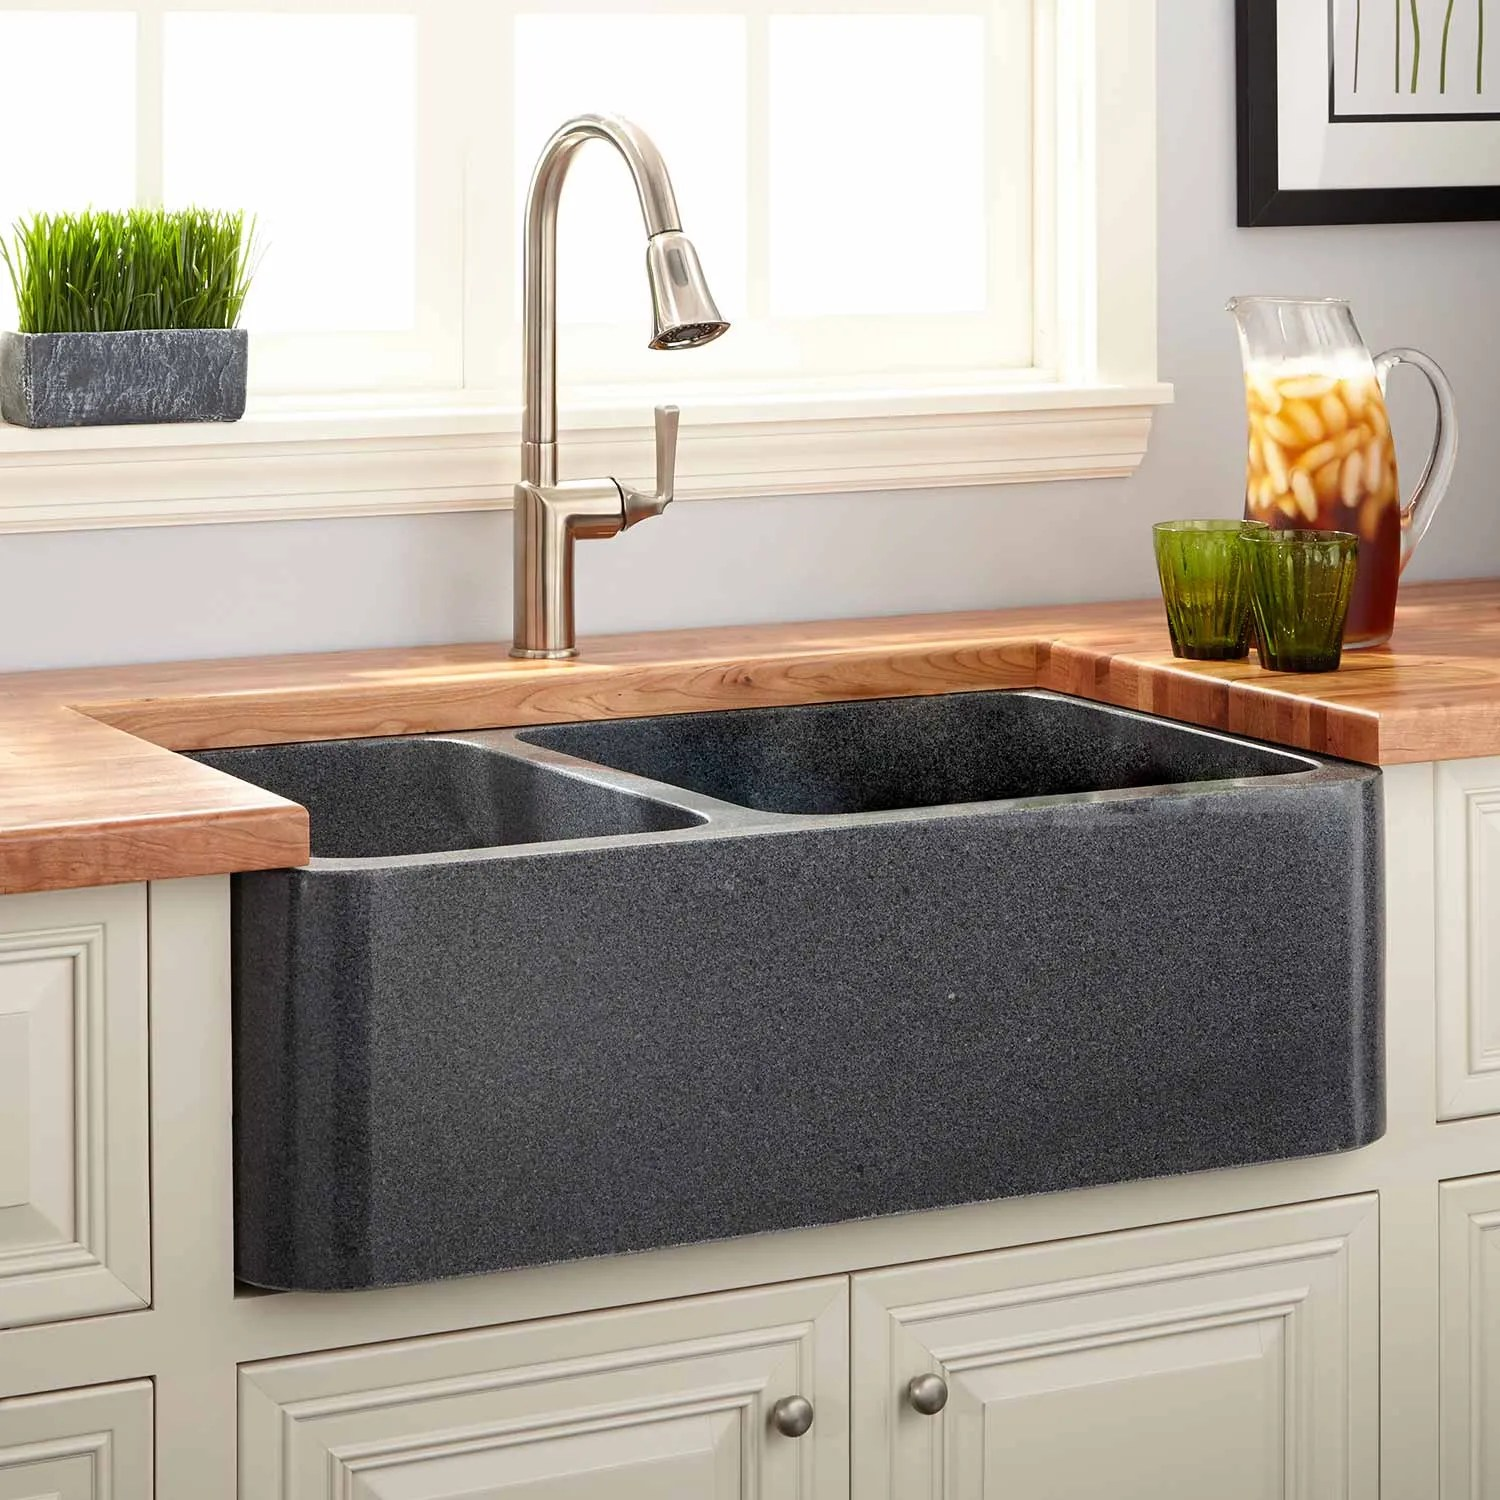 White Farmhouse Sinks For Sale Farmhouse Sink Buying Guide